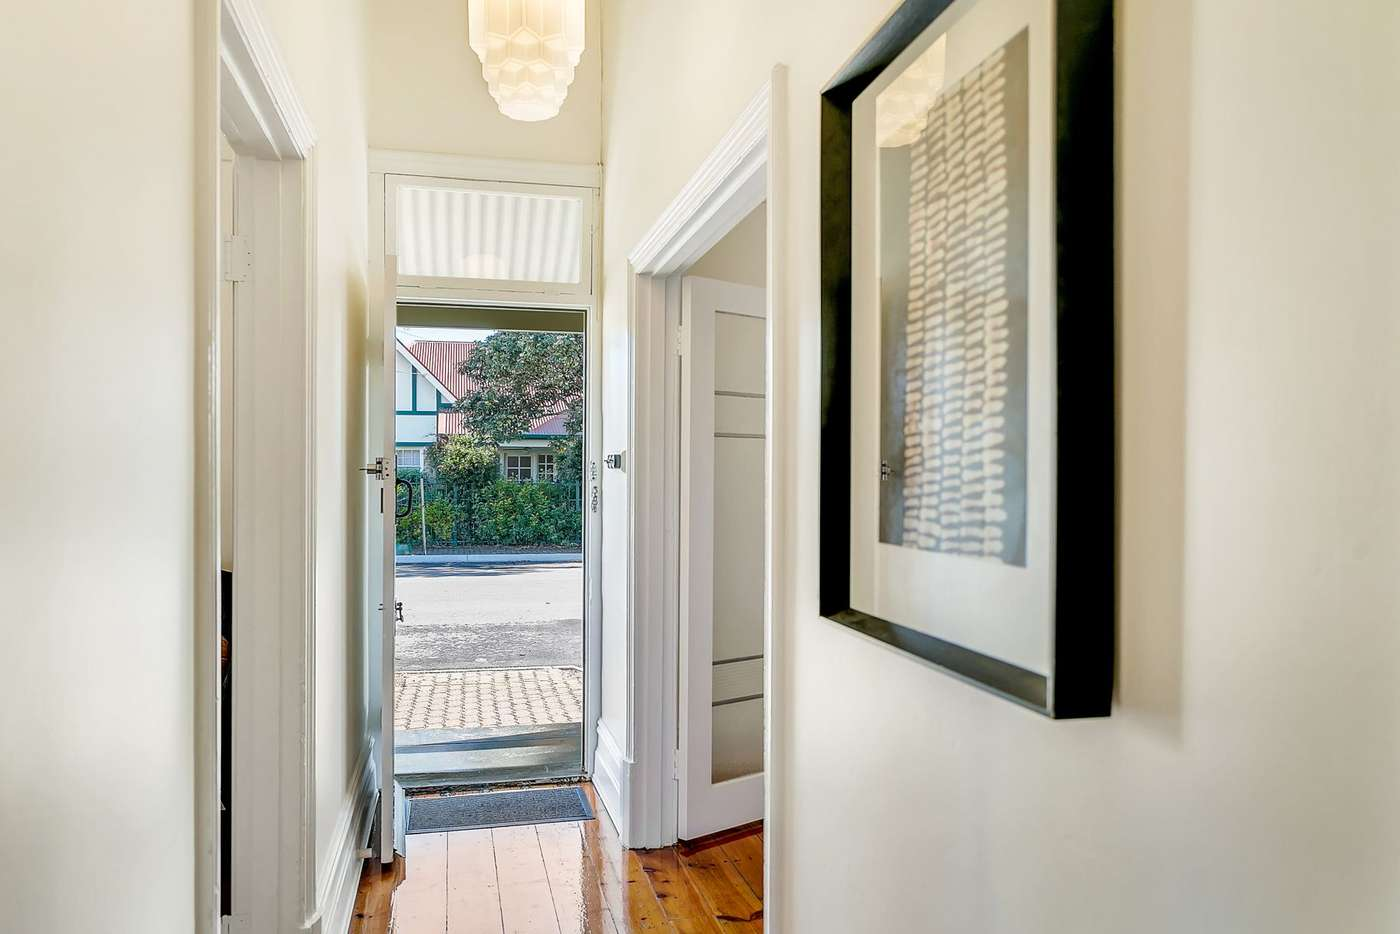 Fifth view of Homely house listing, 20 Mary Street, Glenelg North SA 5045